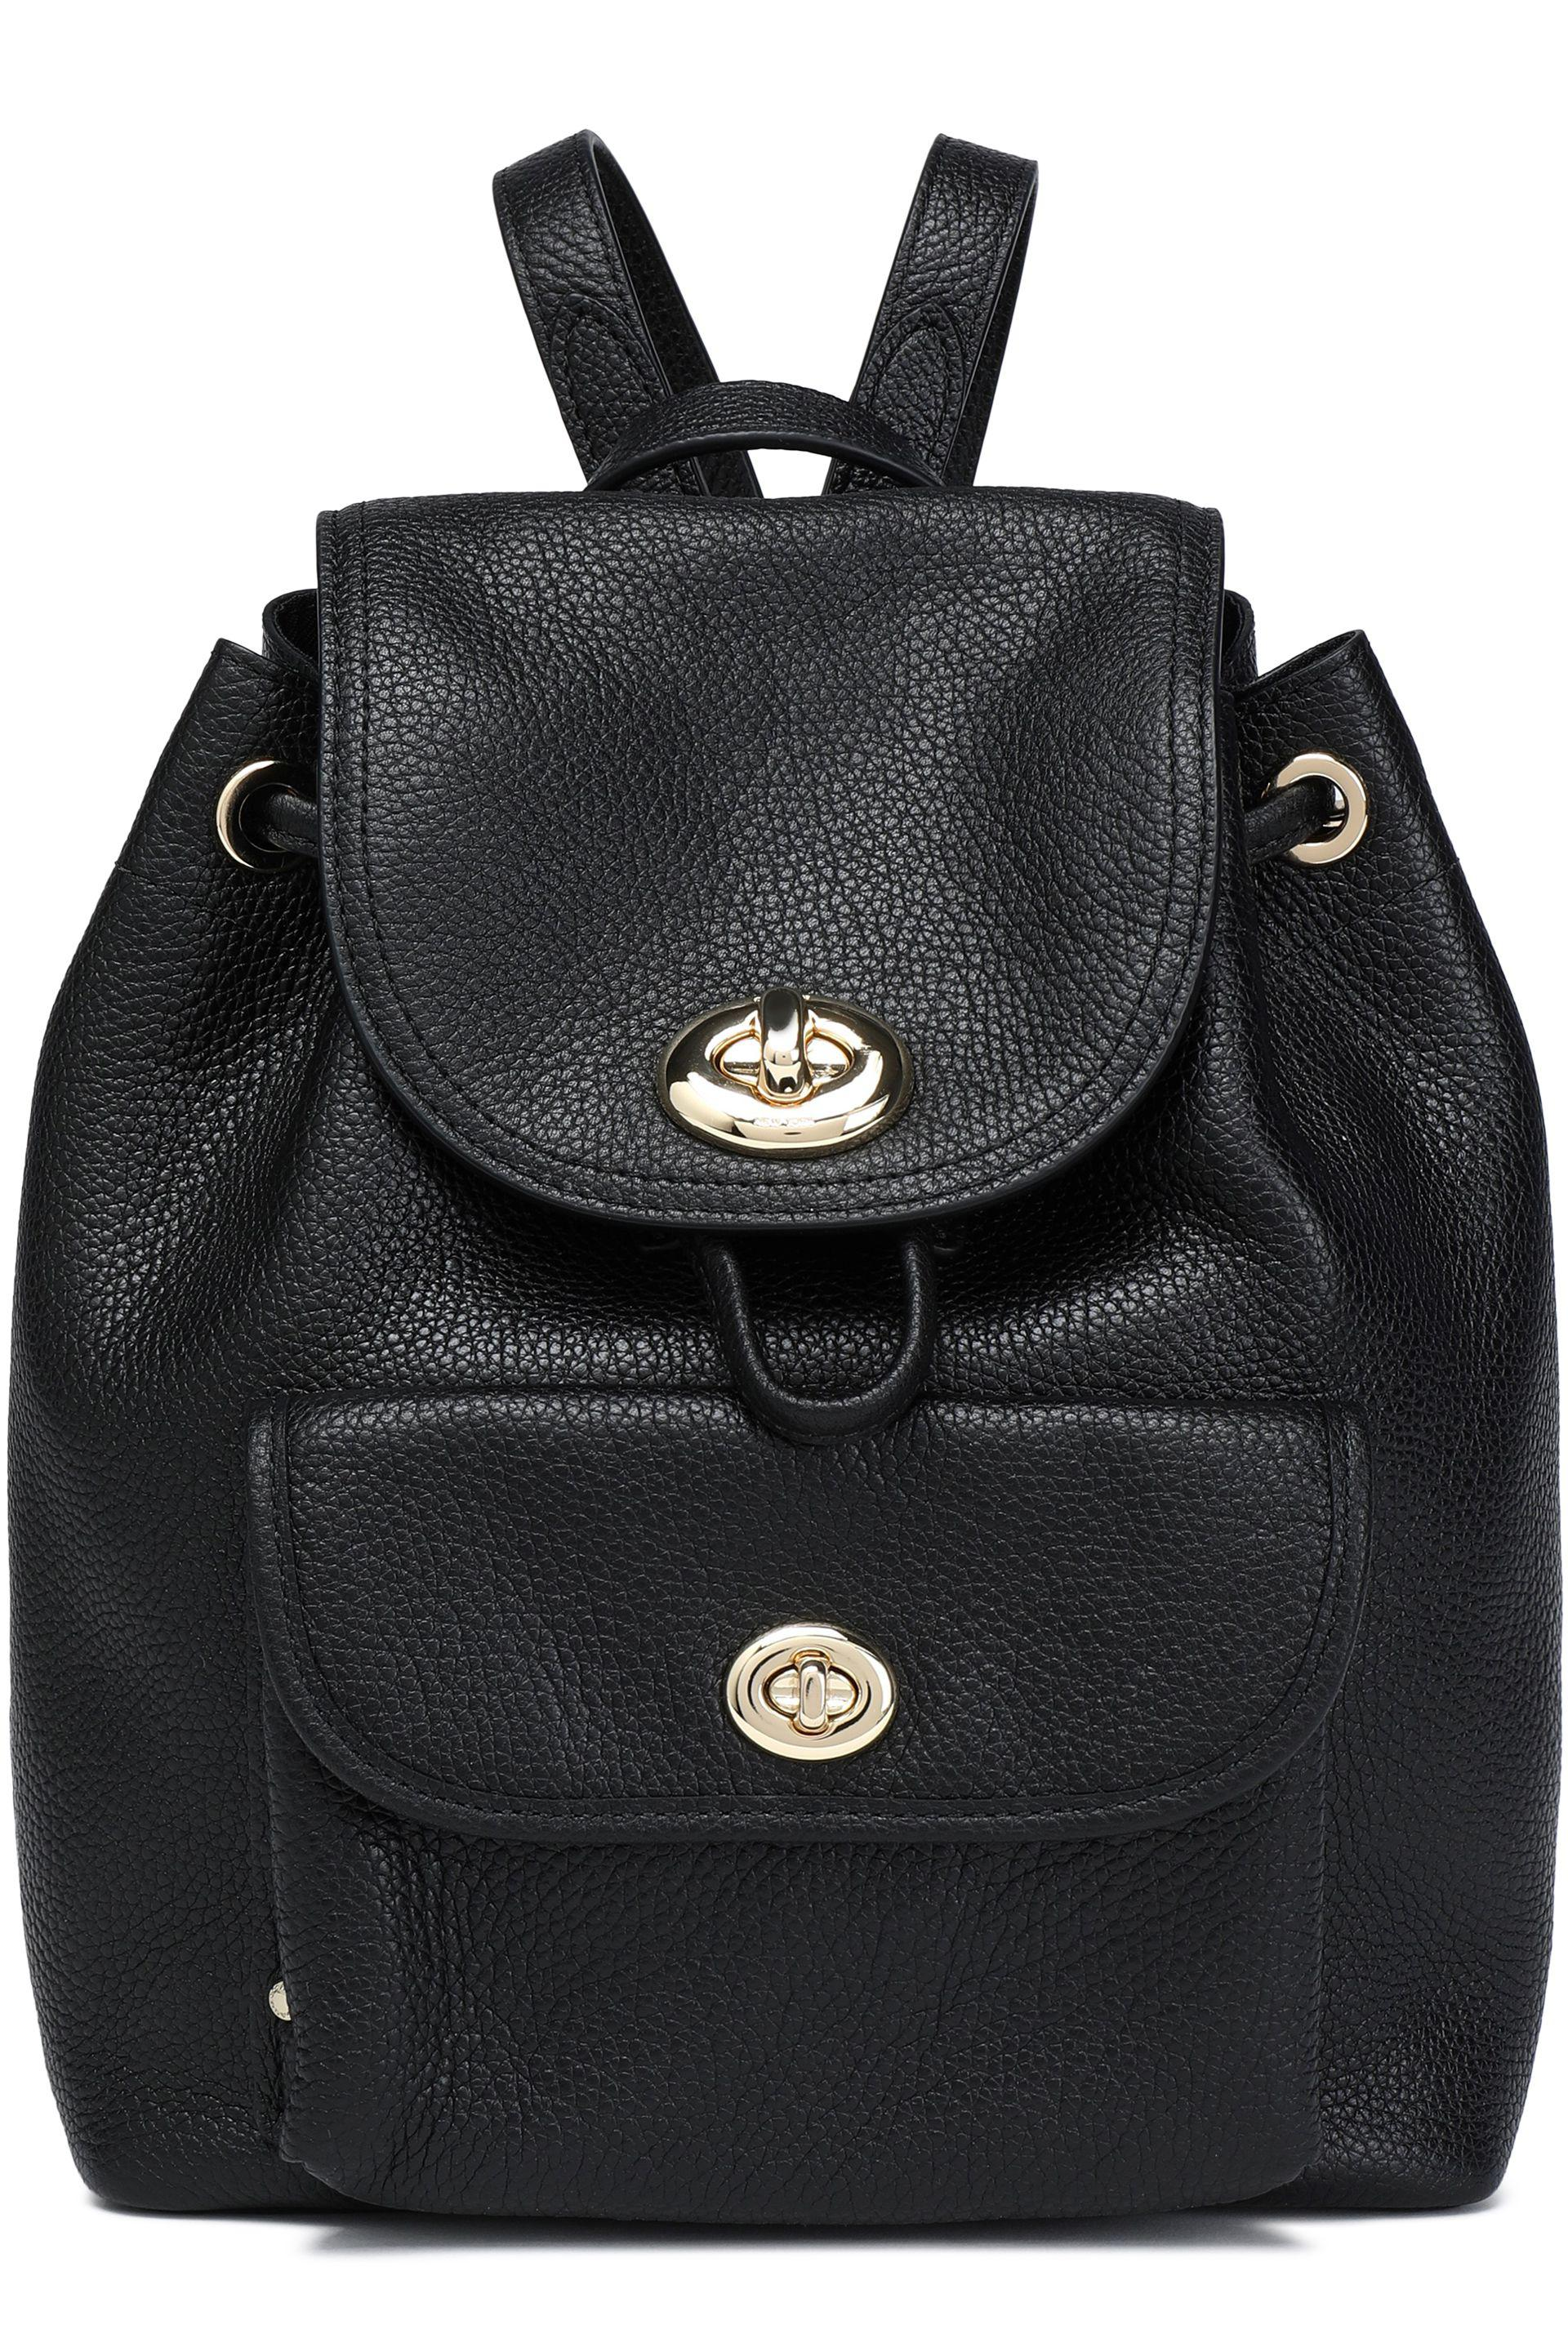 828d57a75c3d ... czech coach black and white leather backpack 64585 7ef20